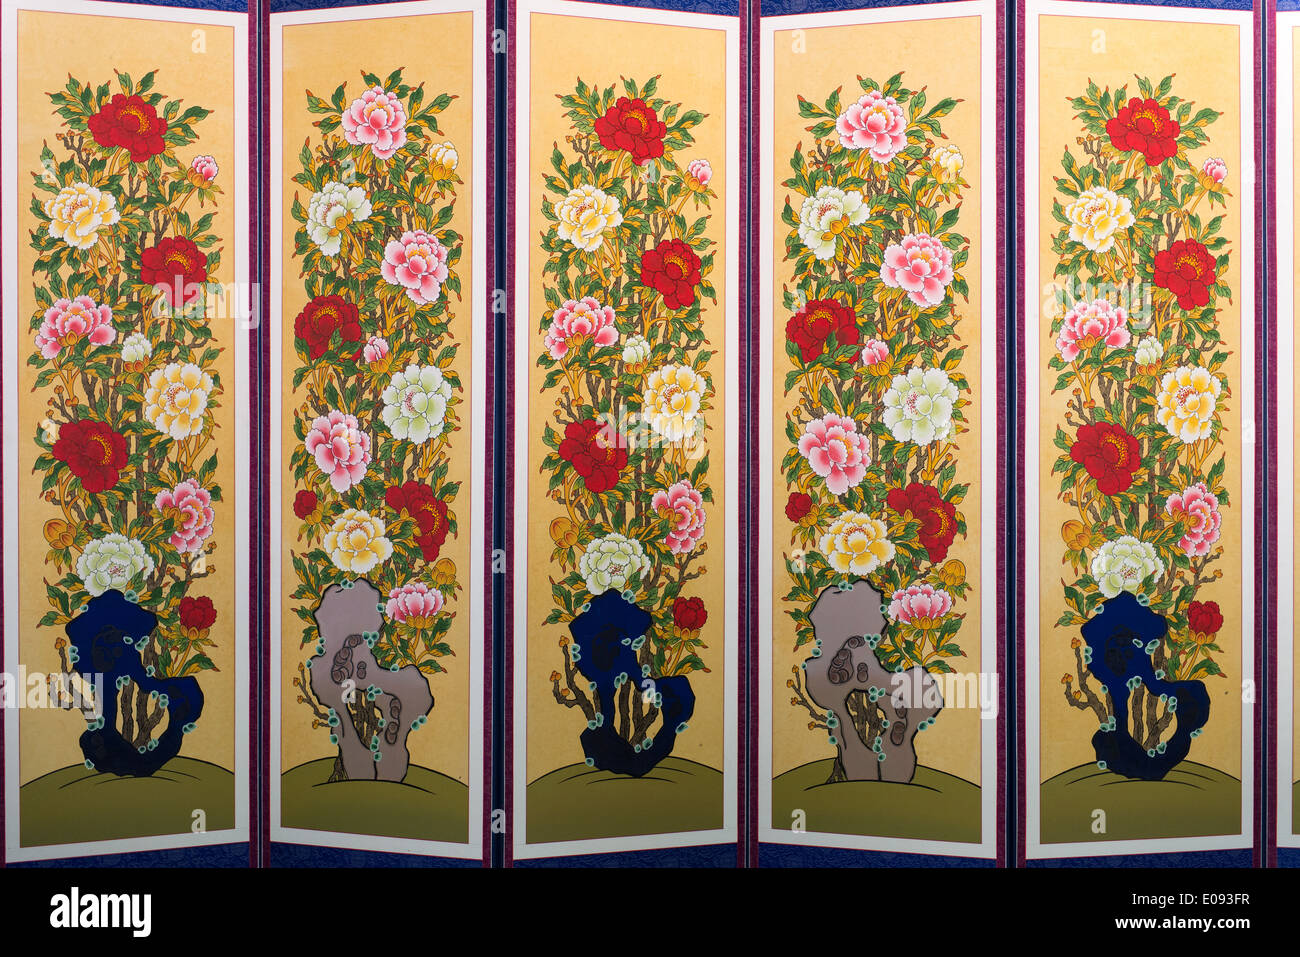 South korean room divider or screen with painted flowers - Stock Image